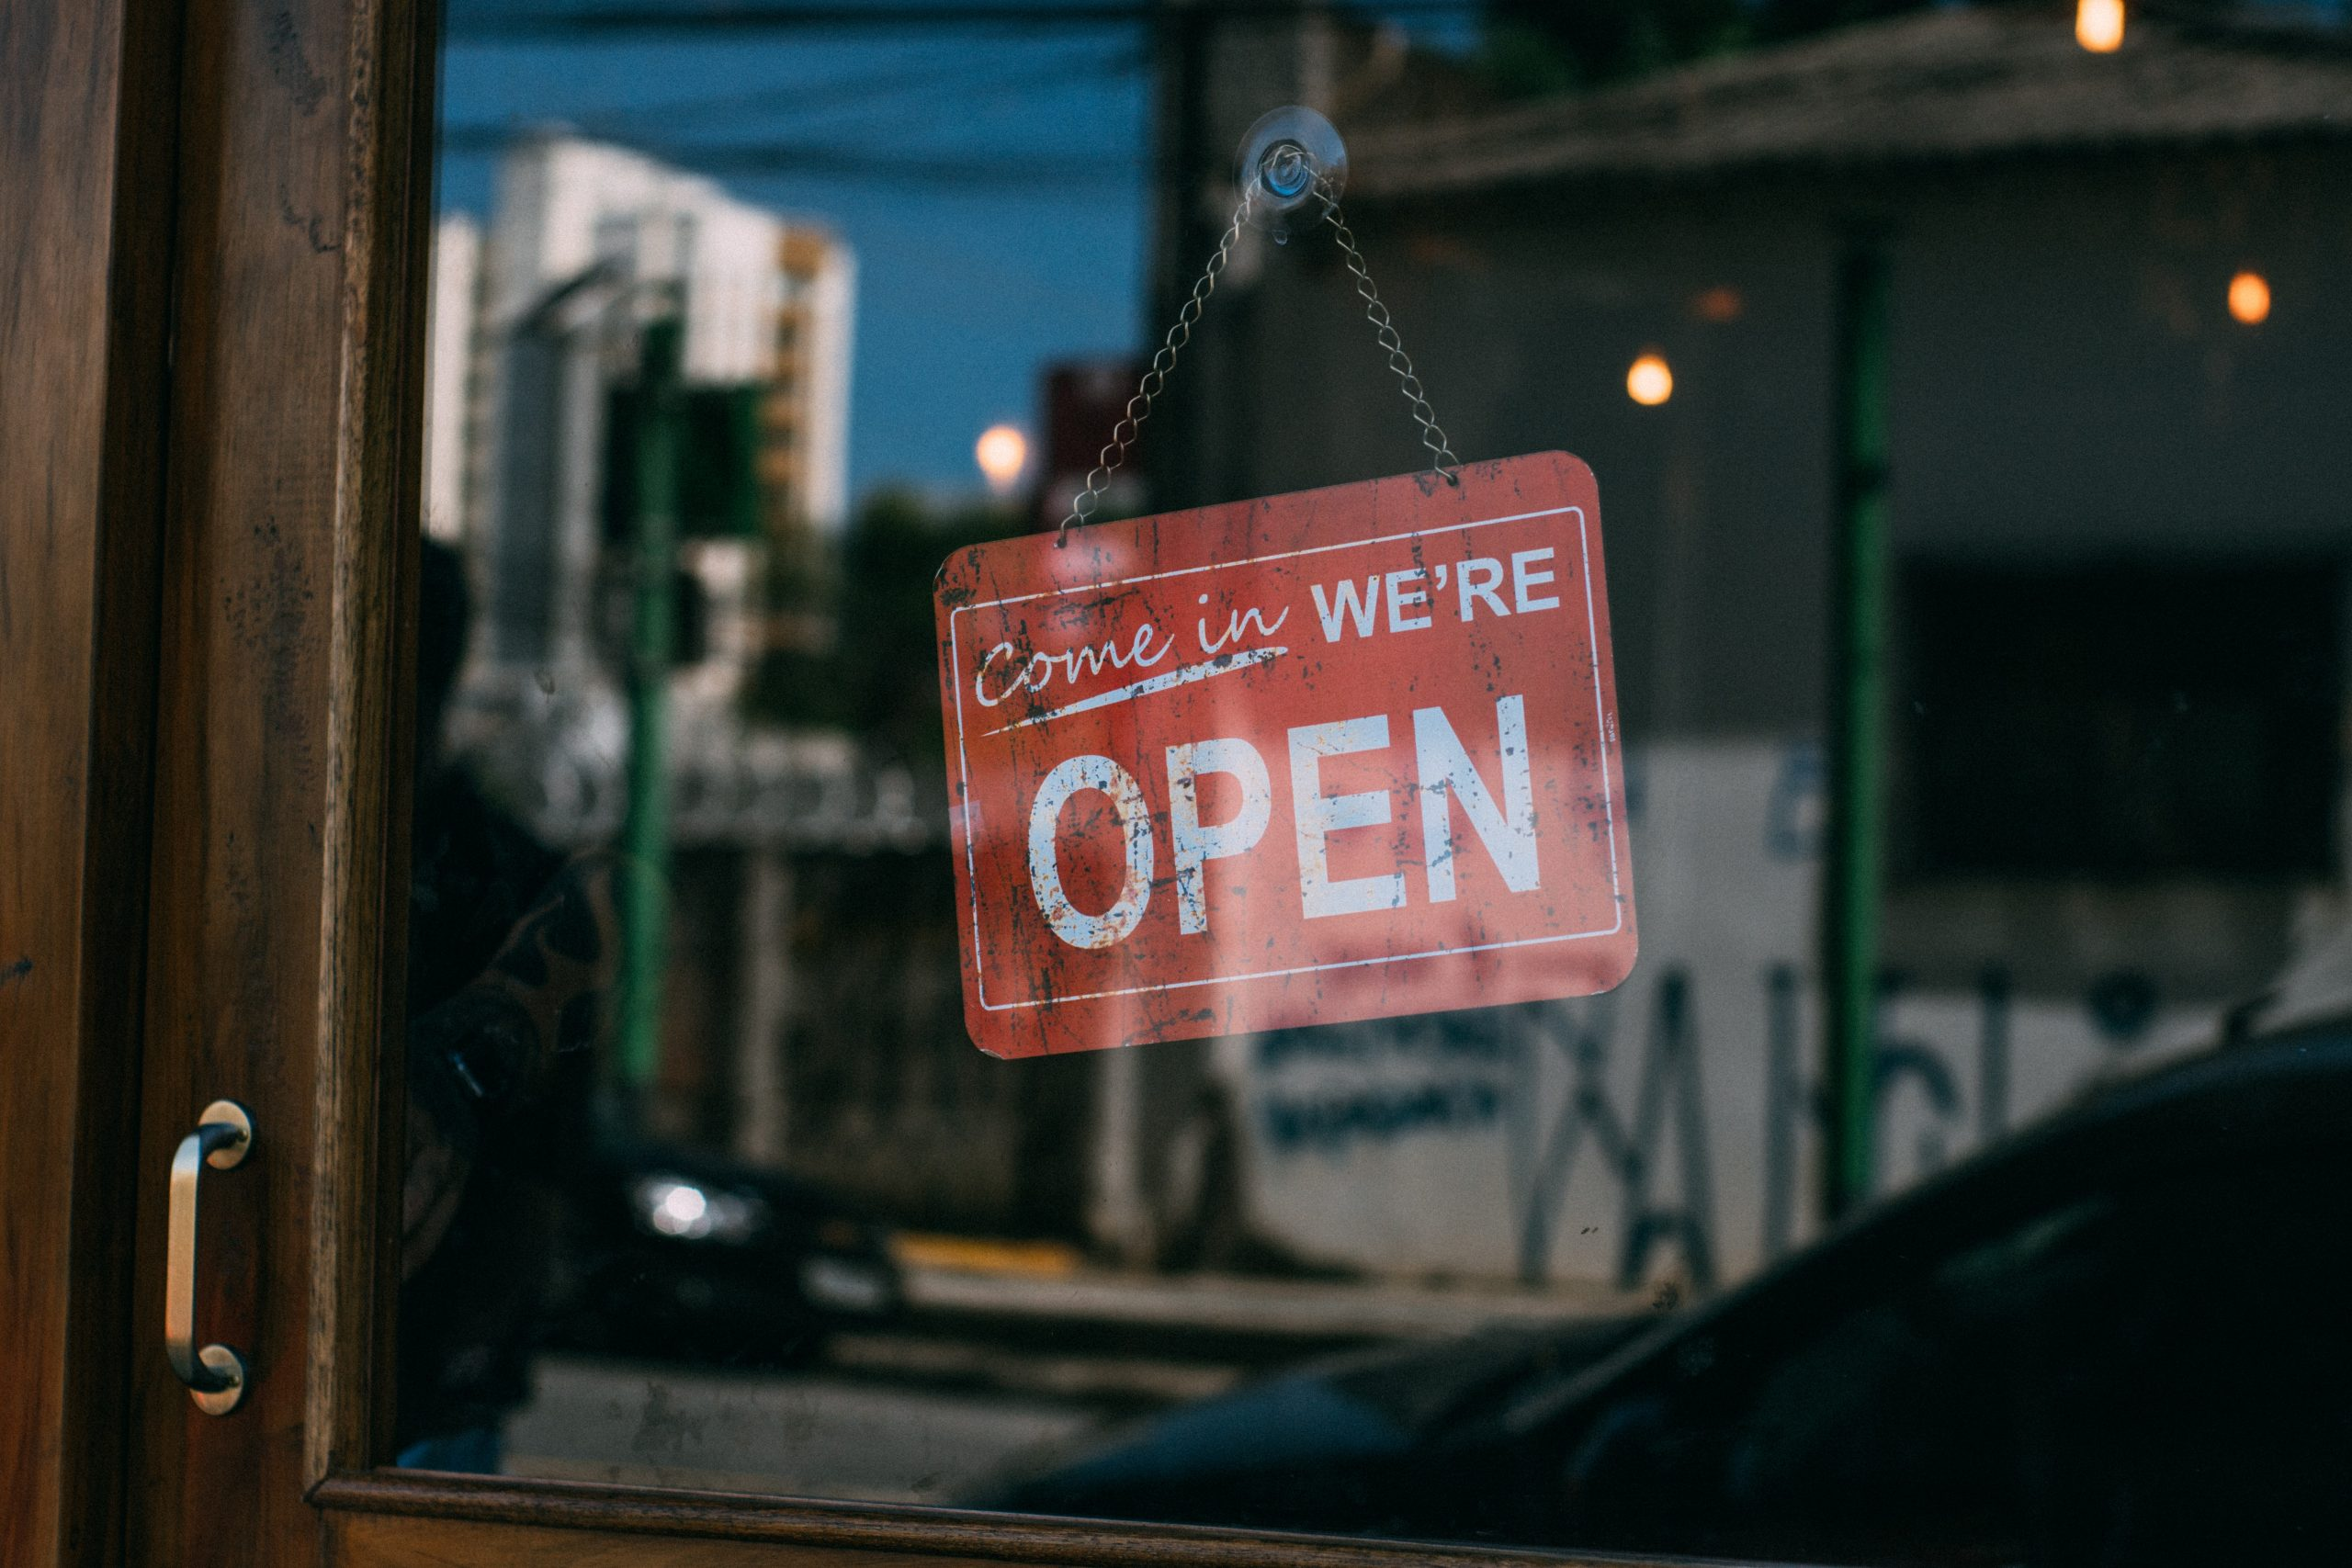 Come-in-we-are-open-sign-on-small-business-shop